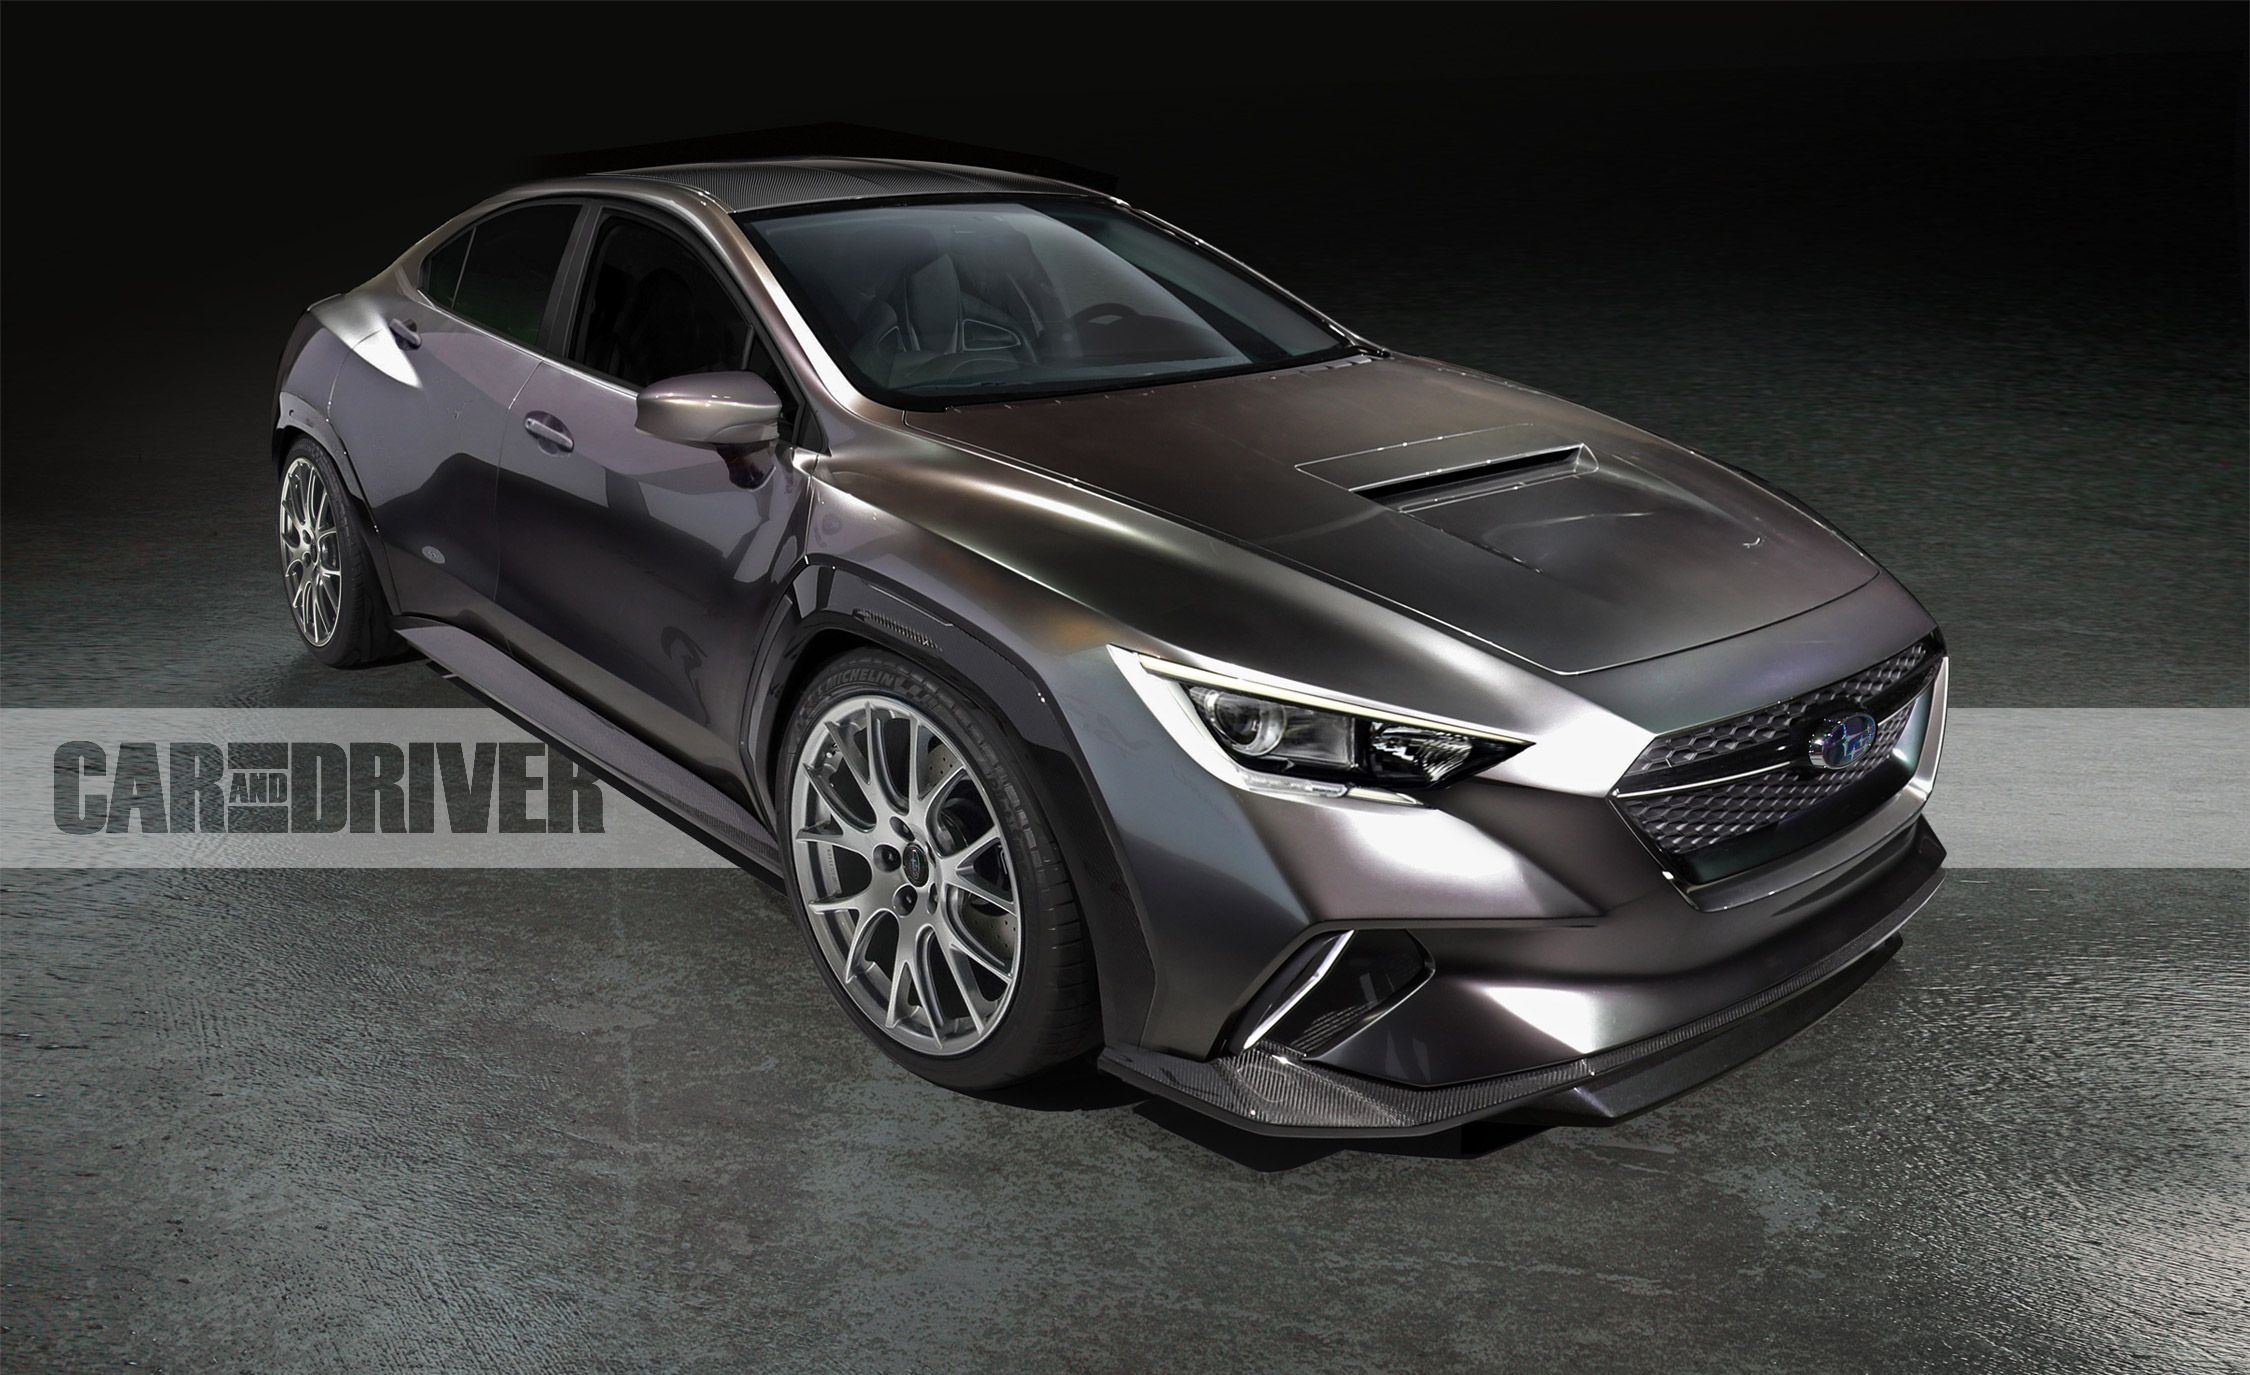 2020 Wrx Sti >> 2020 Subaru WRX: This Could Be Its Most Important Redesign Yet | 25 Cars Worth Waiting For | Car ...